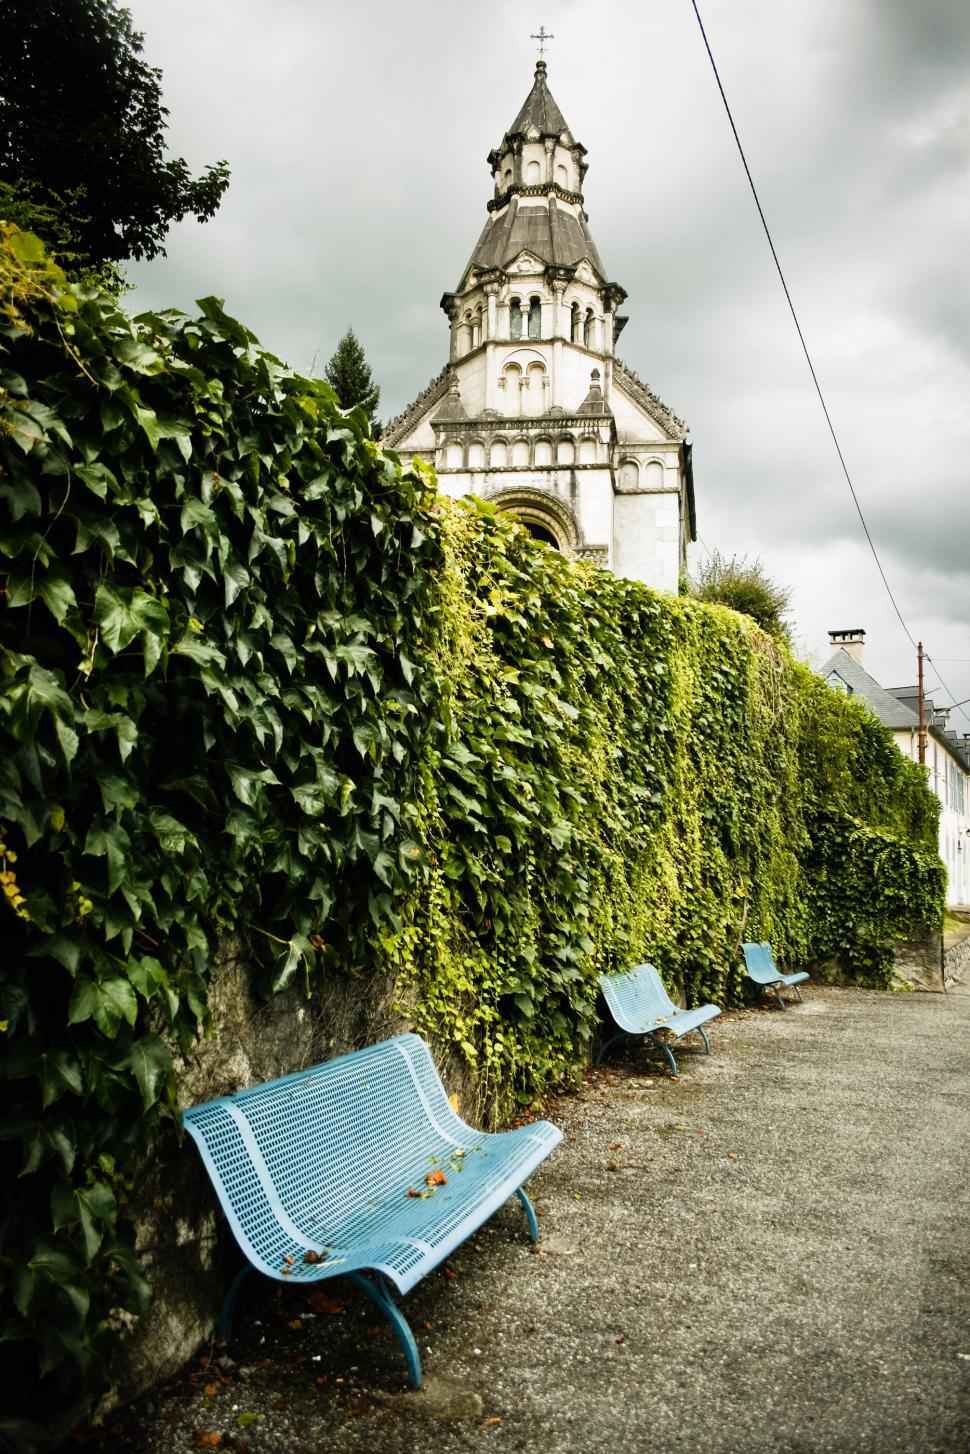 Download Free Stock HD Photo of Park benches by historical church Online